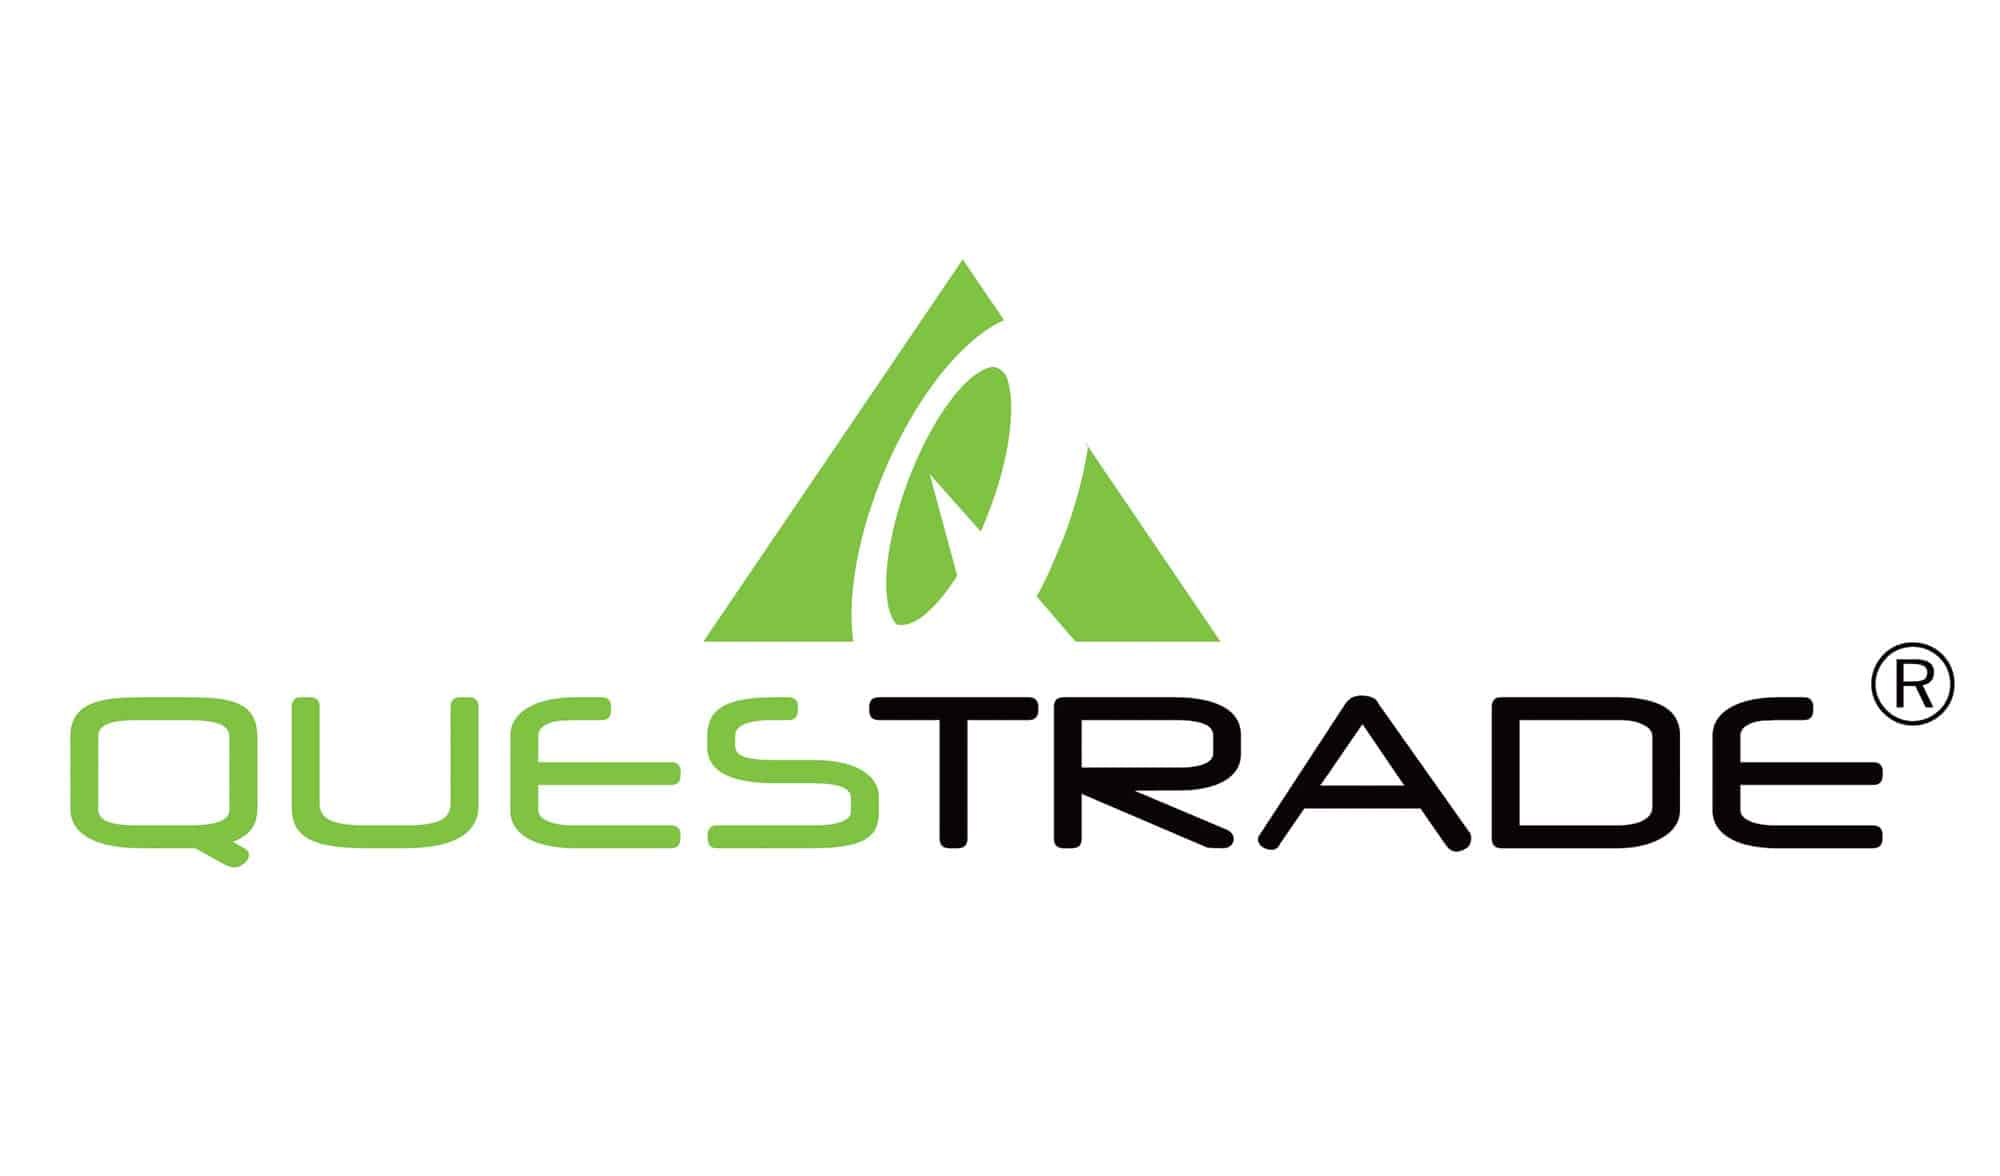 questrade reviews